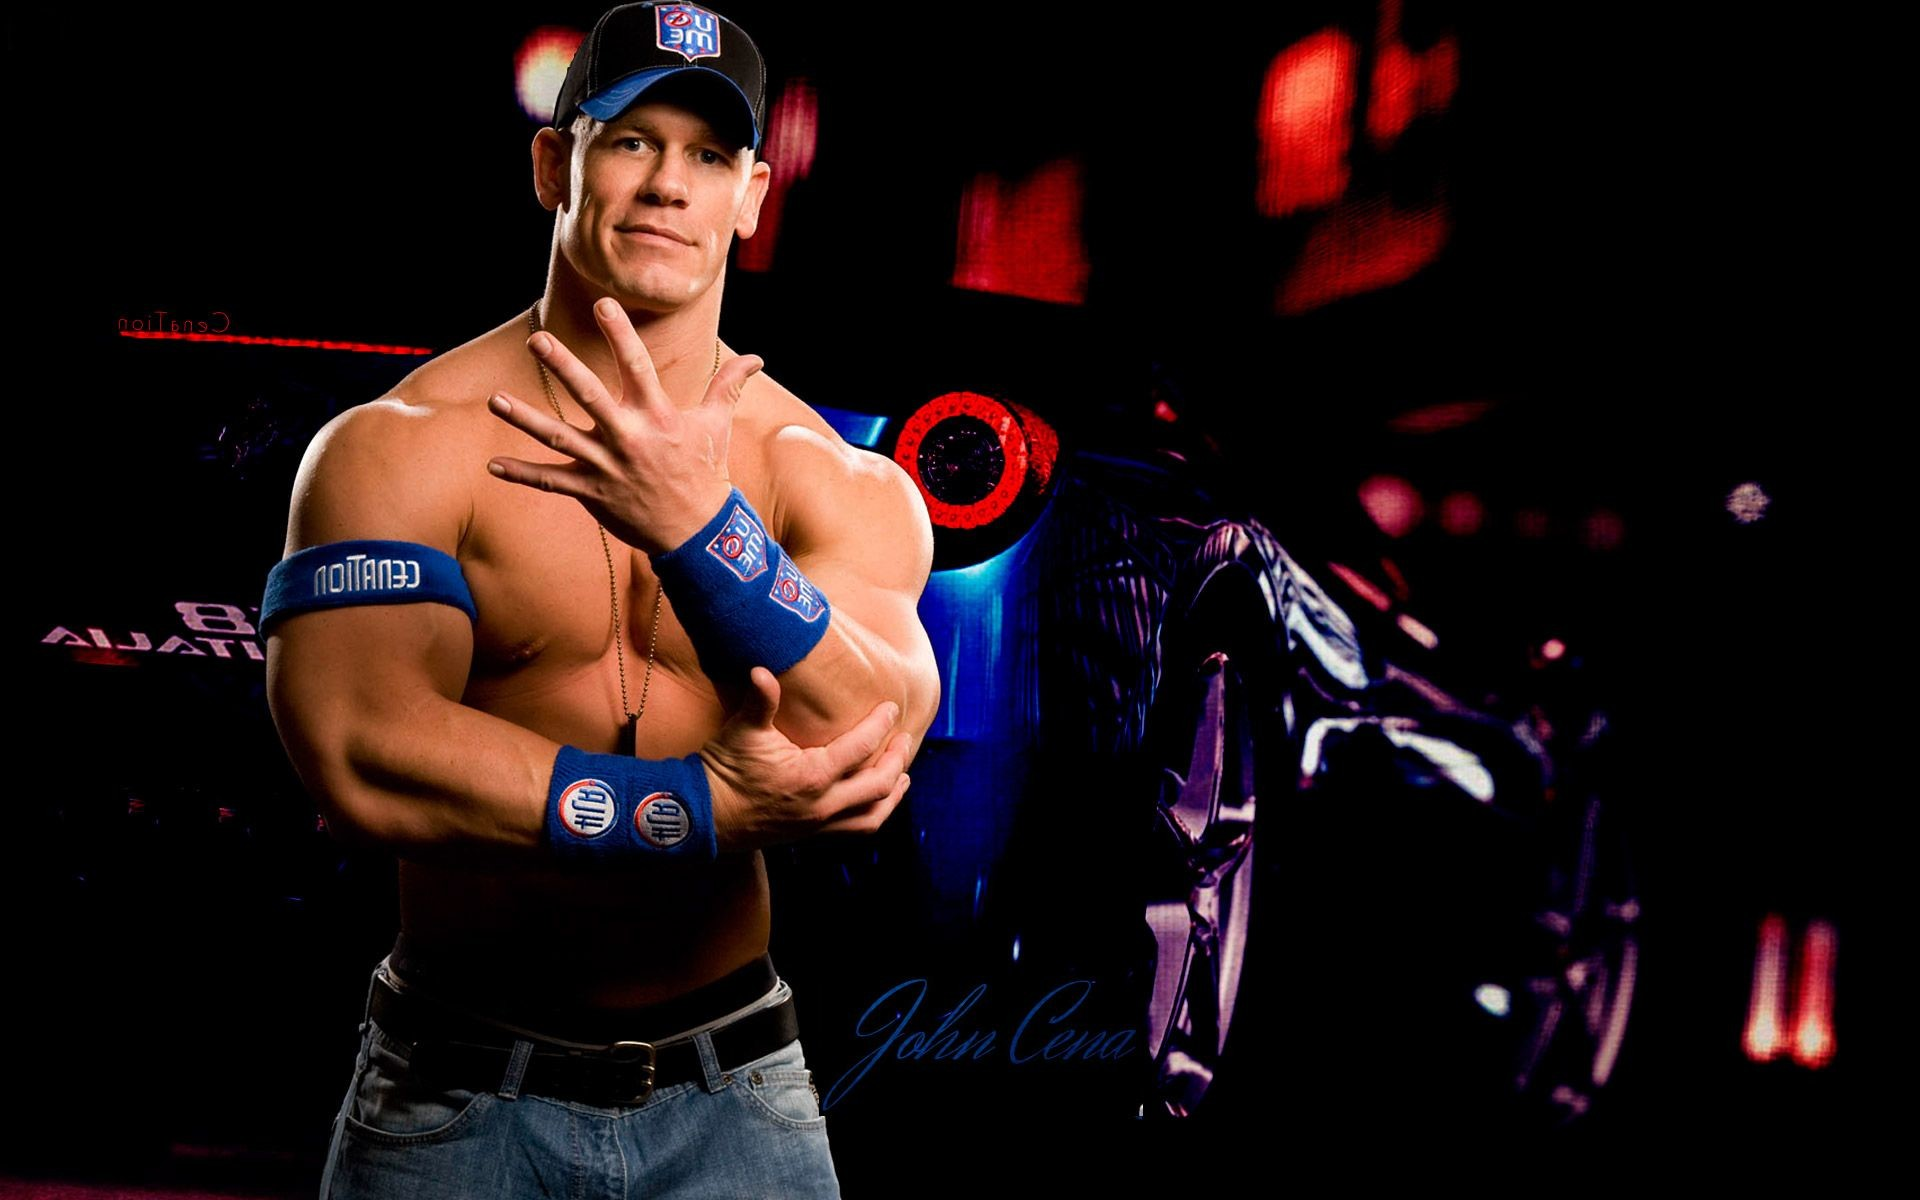 1920x1200 2014 John Cena Wallpaper Android Wallpaper | WallpaperLepi